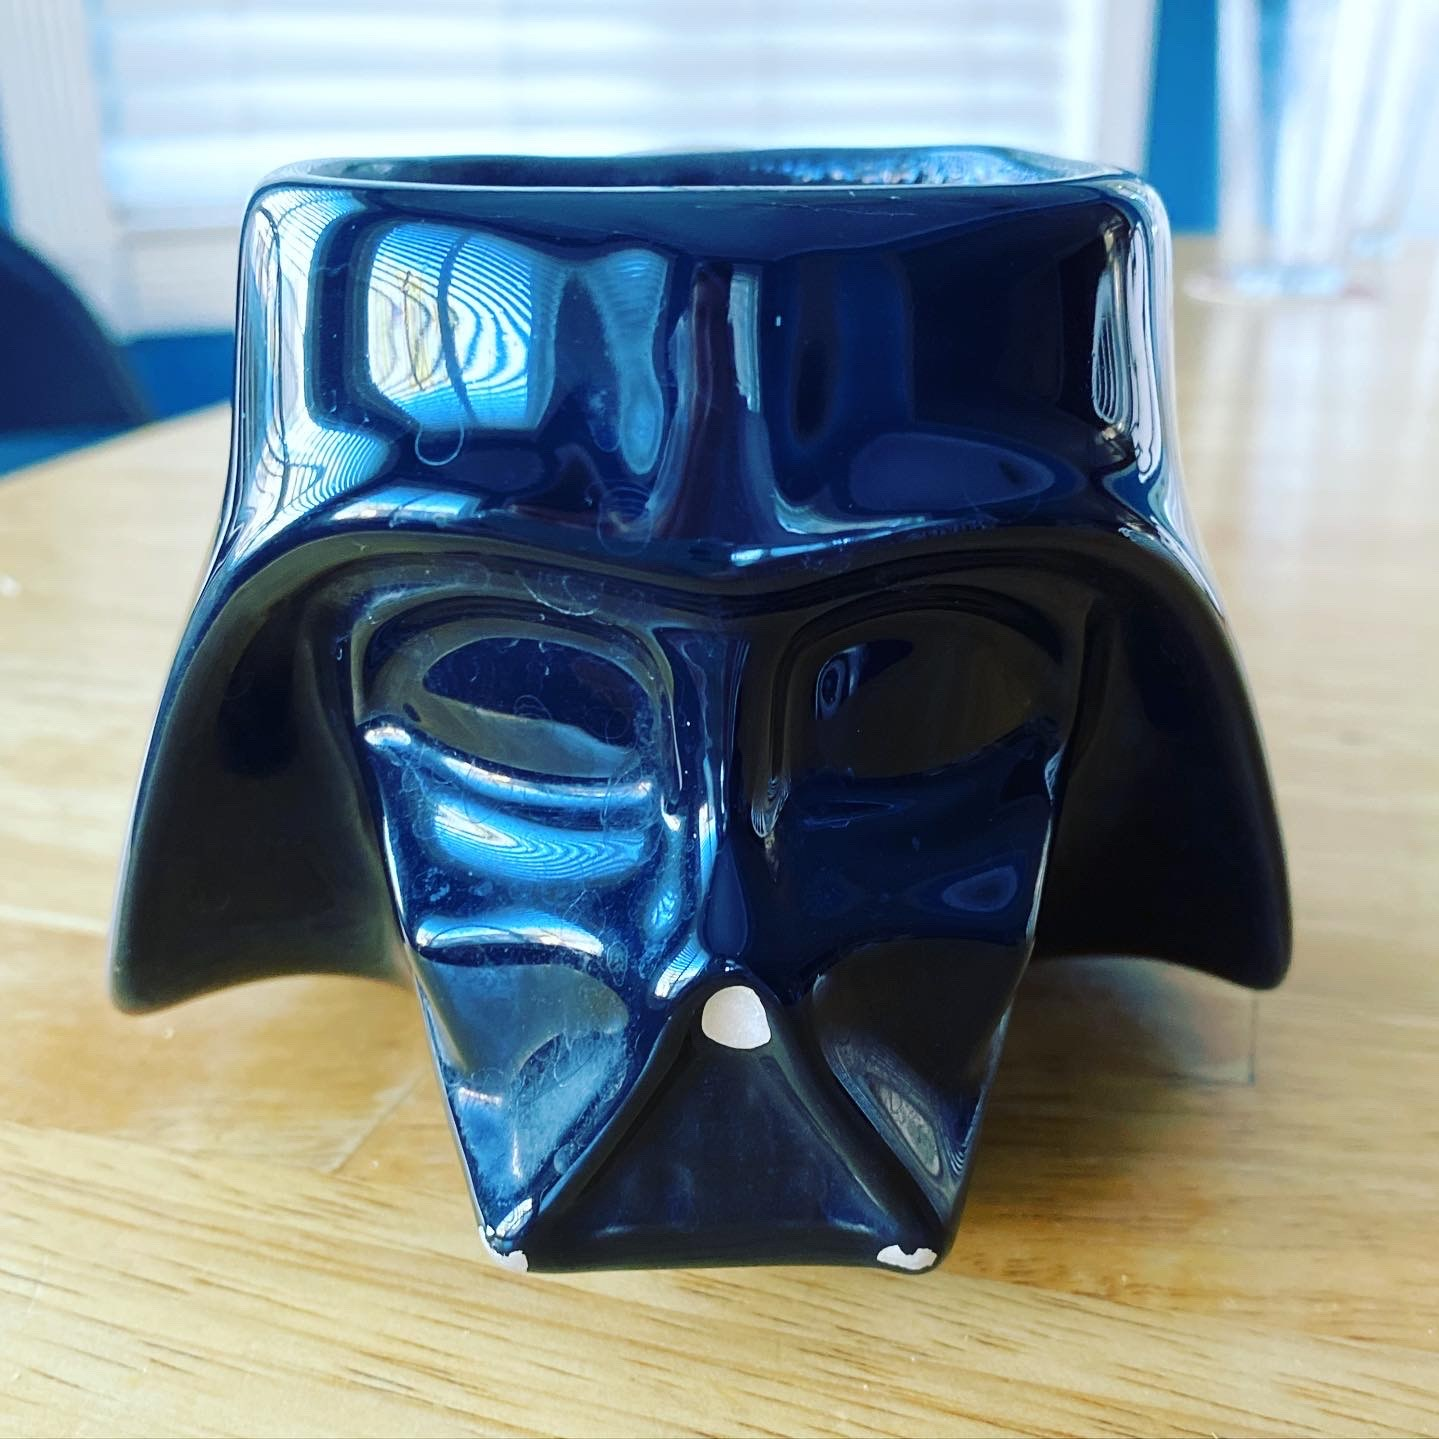 Darth Vader coffee mug photo denise m. colby #disneymugs post